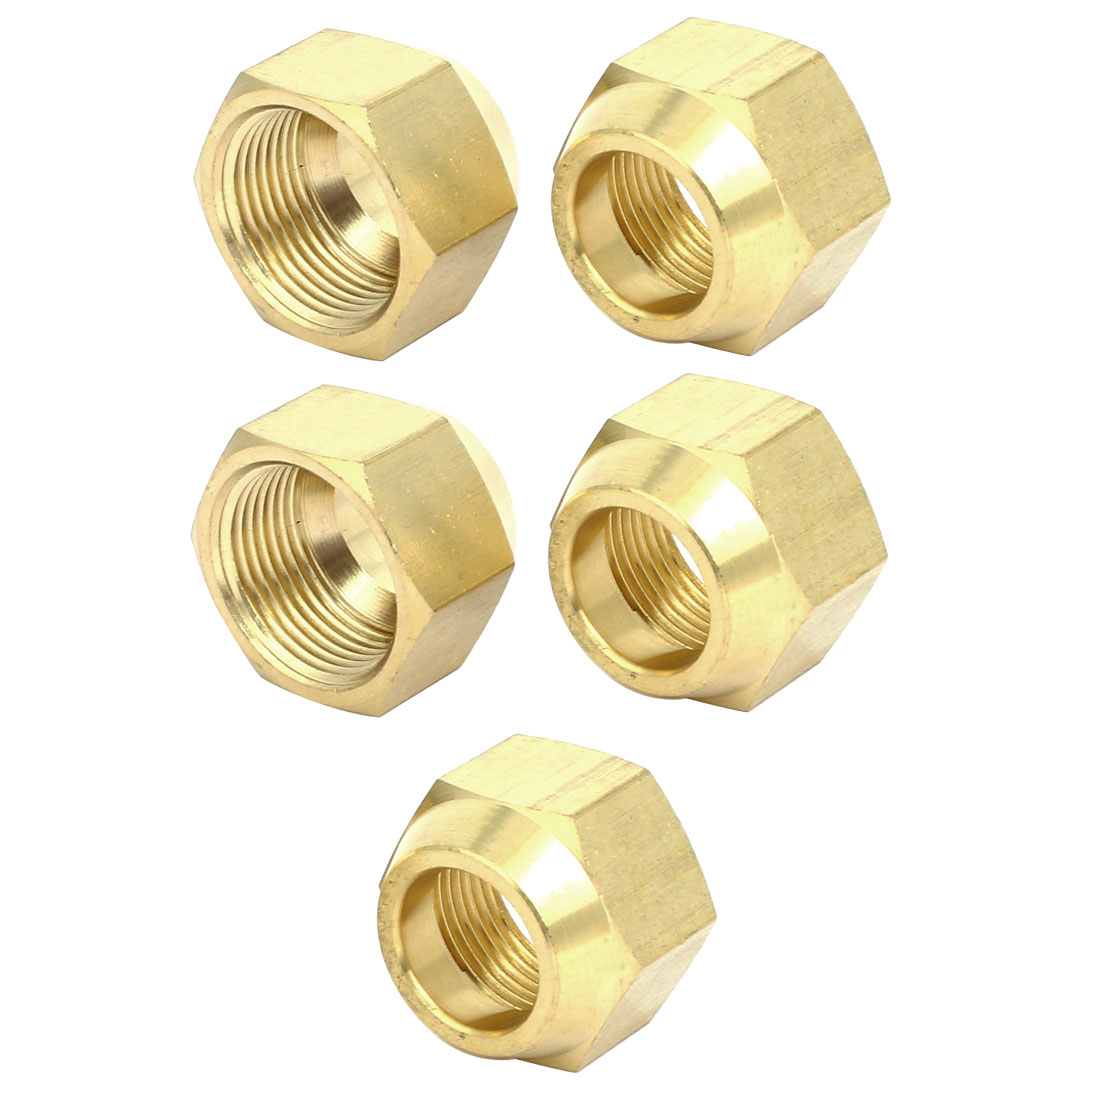 3/4BSP Brass Flare Nuts Air Conditioner Parts Fittings 5pcs for 19mm Dia Pipe